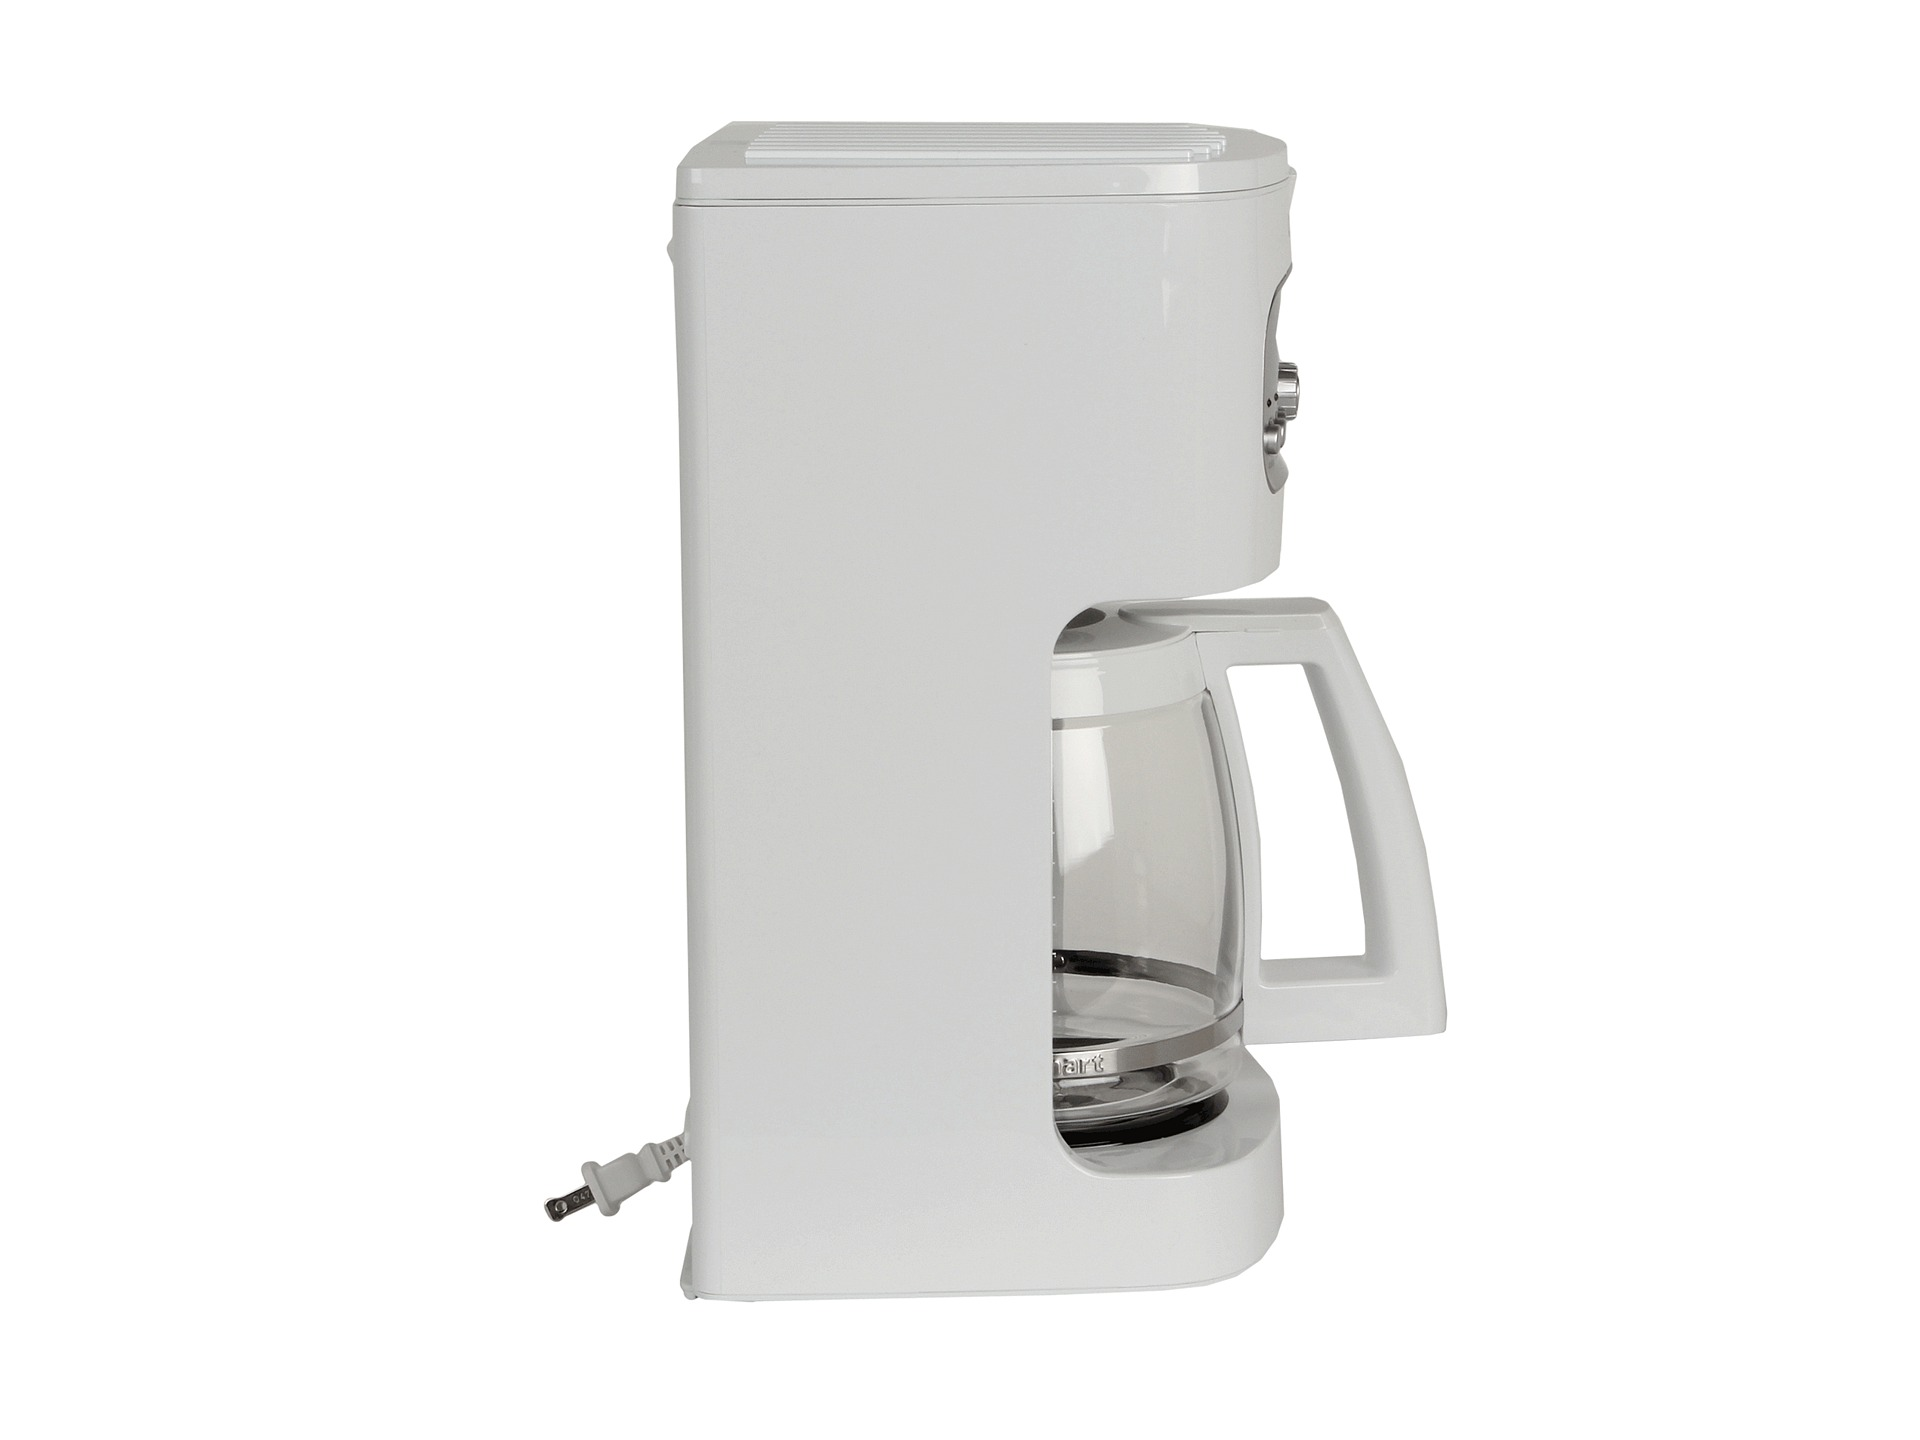 Cuisinart Coffee Maker In White : Cuisinart Dcc 1100 12 Cup Programmable Coffee Maker White Shipped Free at Zappos